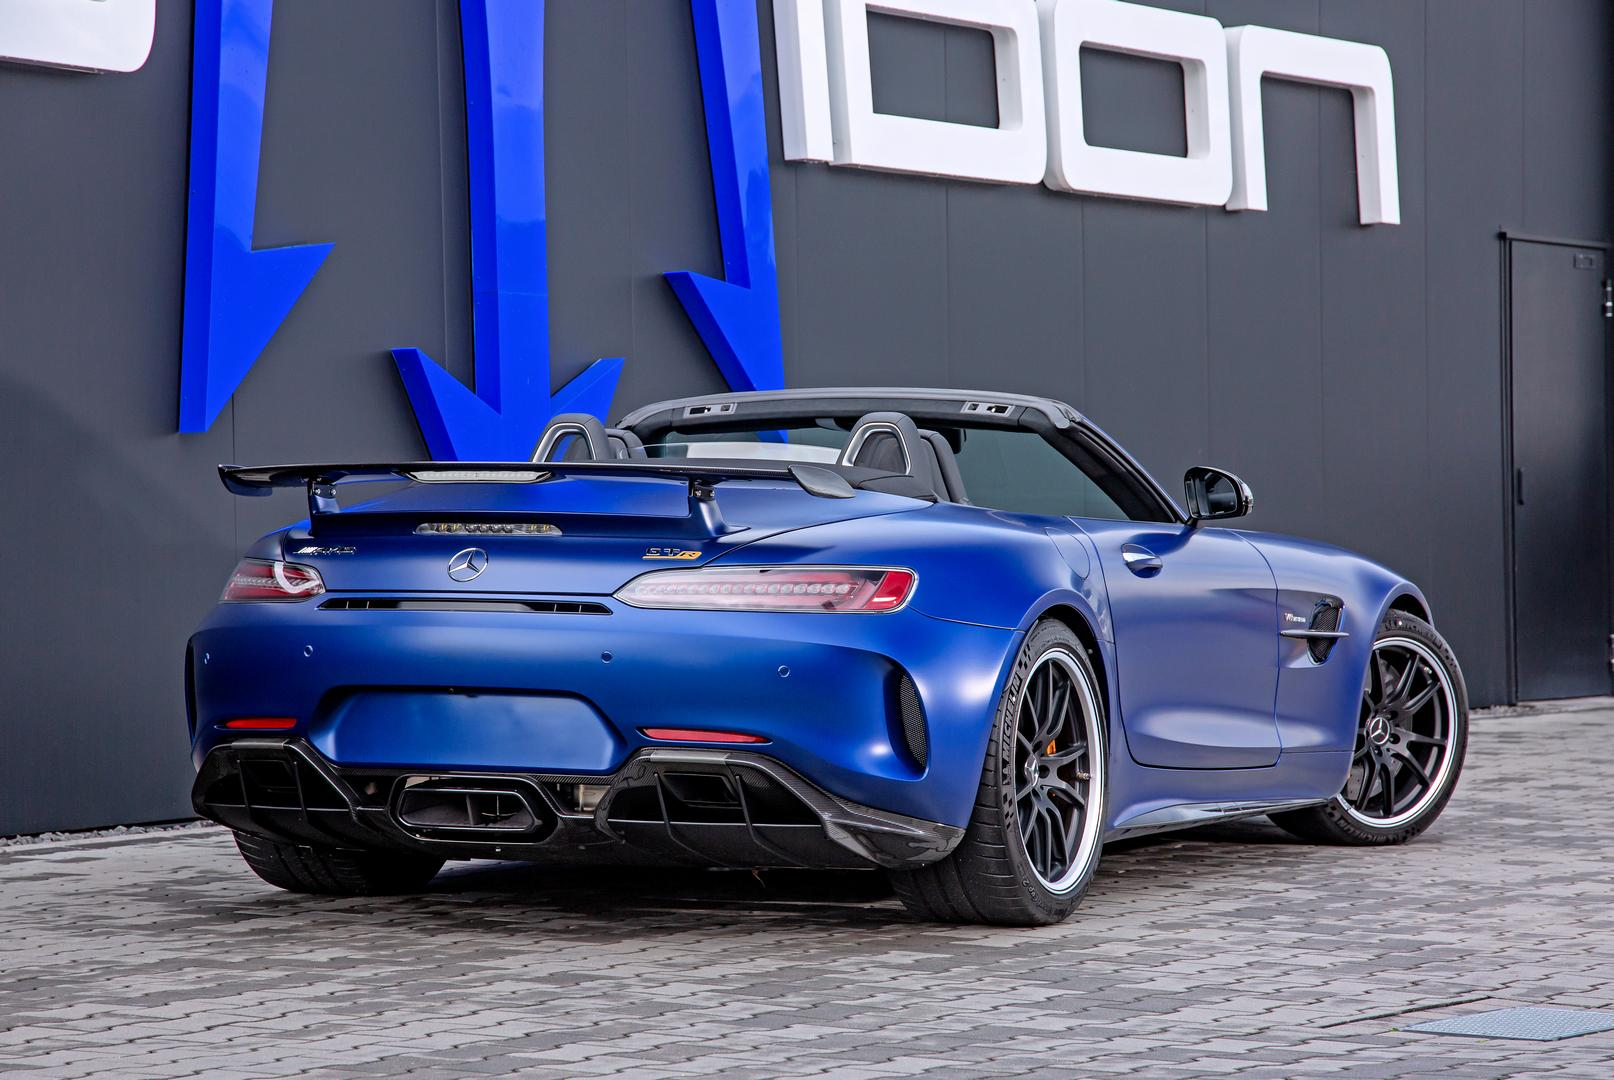 Posaidon Mercedes-AMG GT R Roadster rear